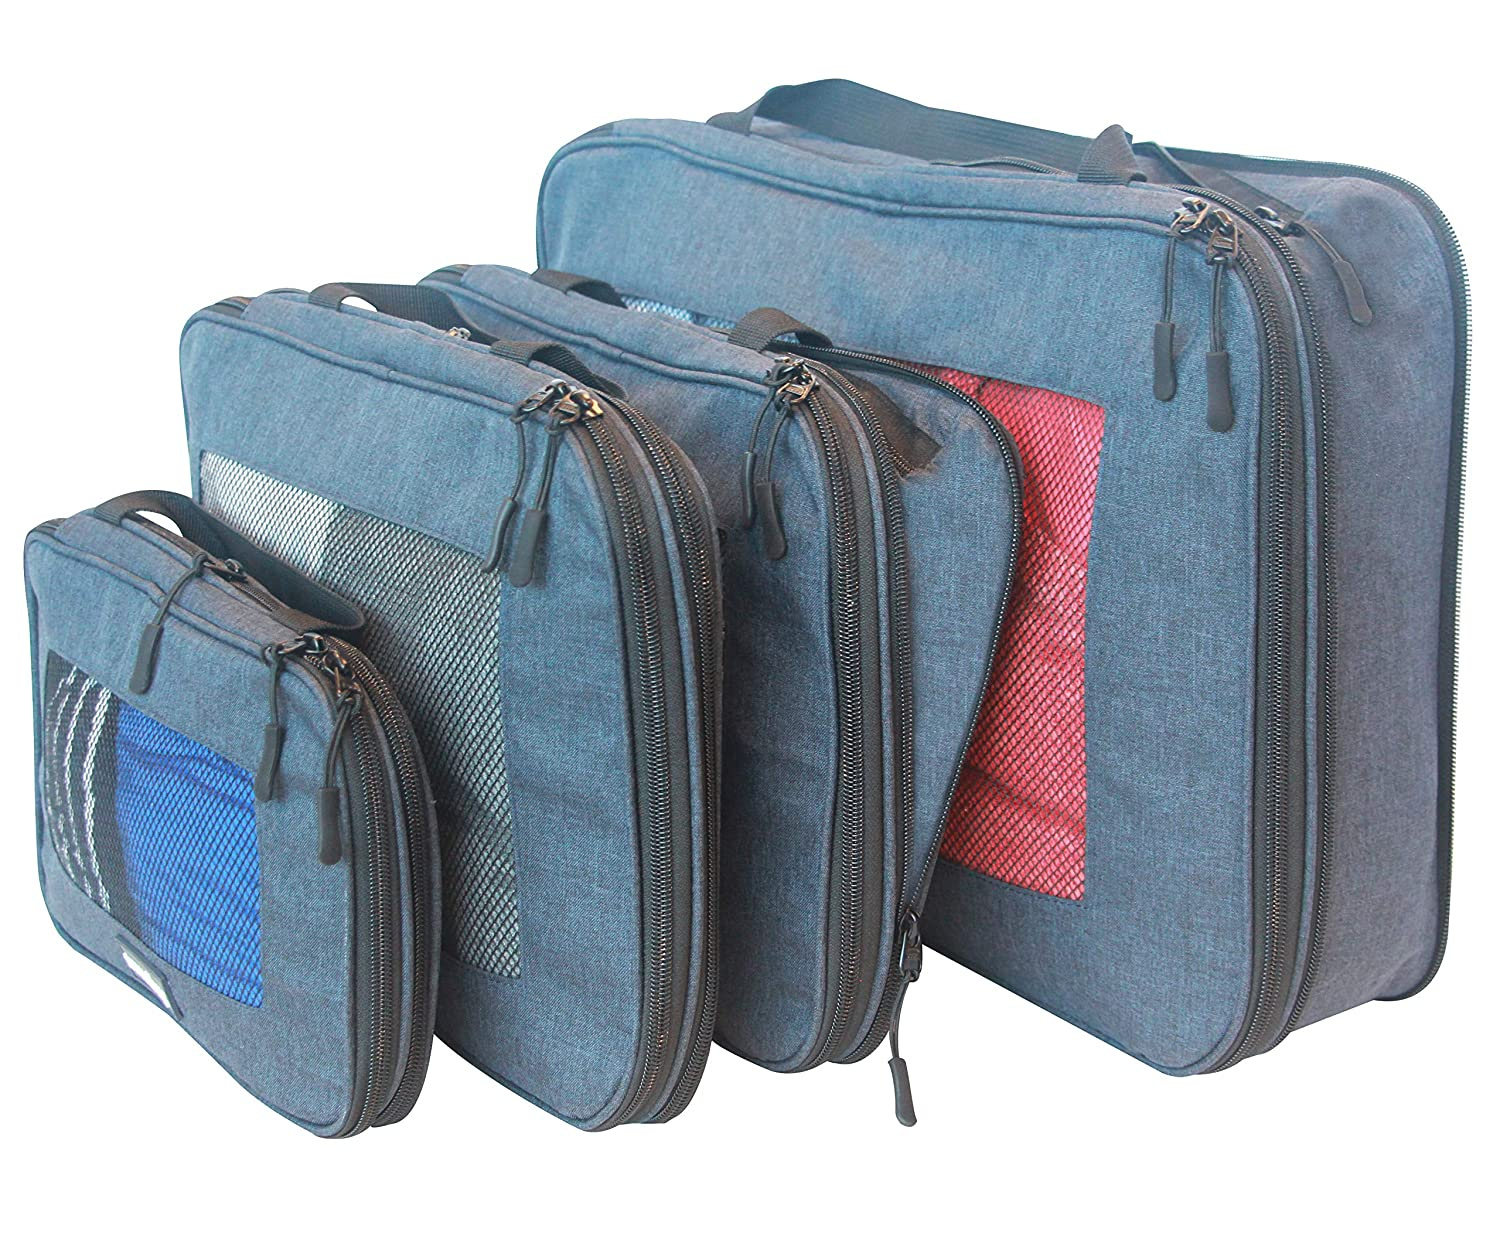 62bb280b89aa travelbug Compression Packing Cubes Set of 4 (Small, Medium, Medium, and  Large) | Compresses to fit More in Less Space | Luggage Organizer for  Travel ...